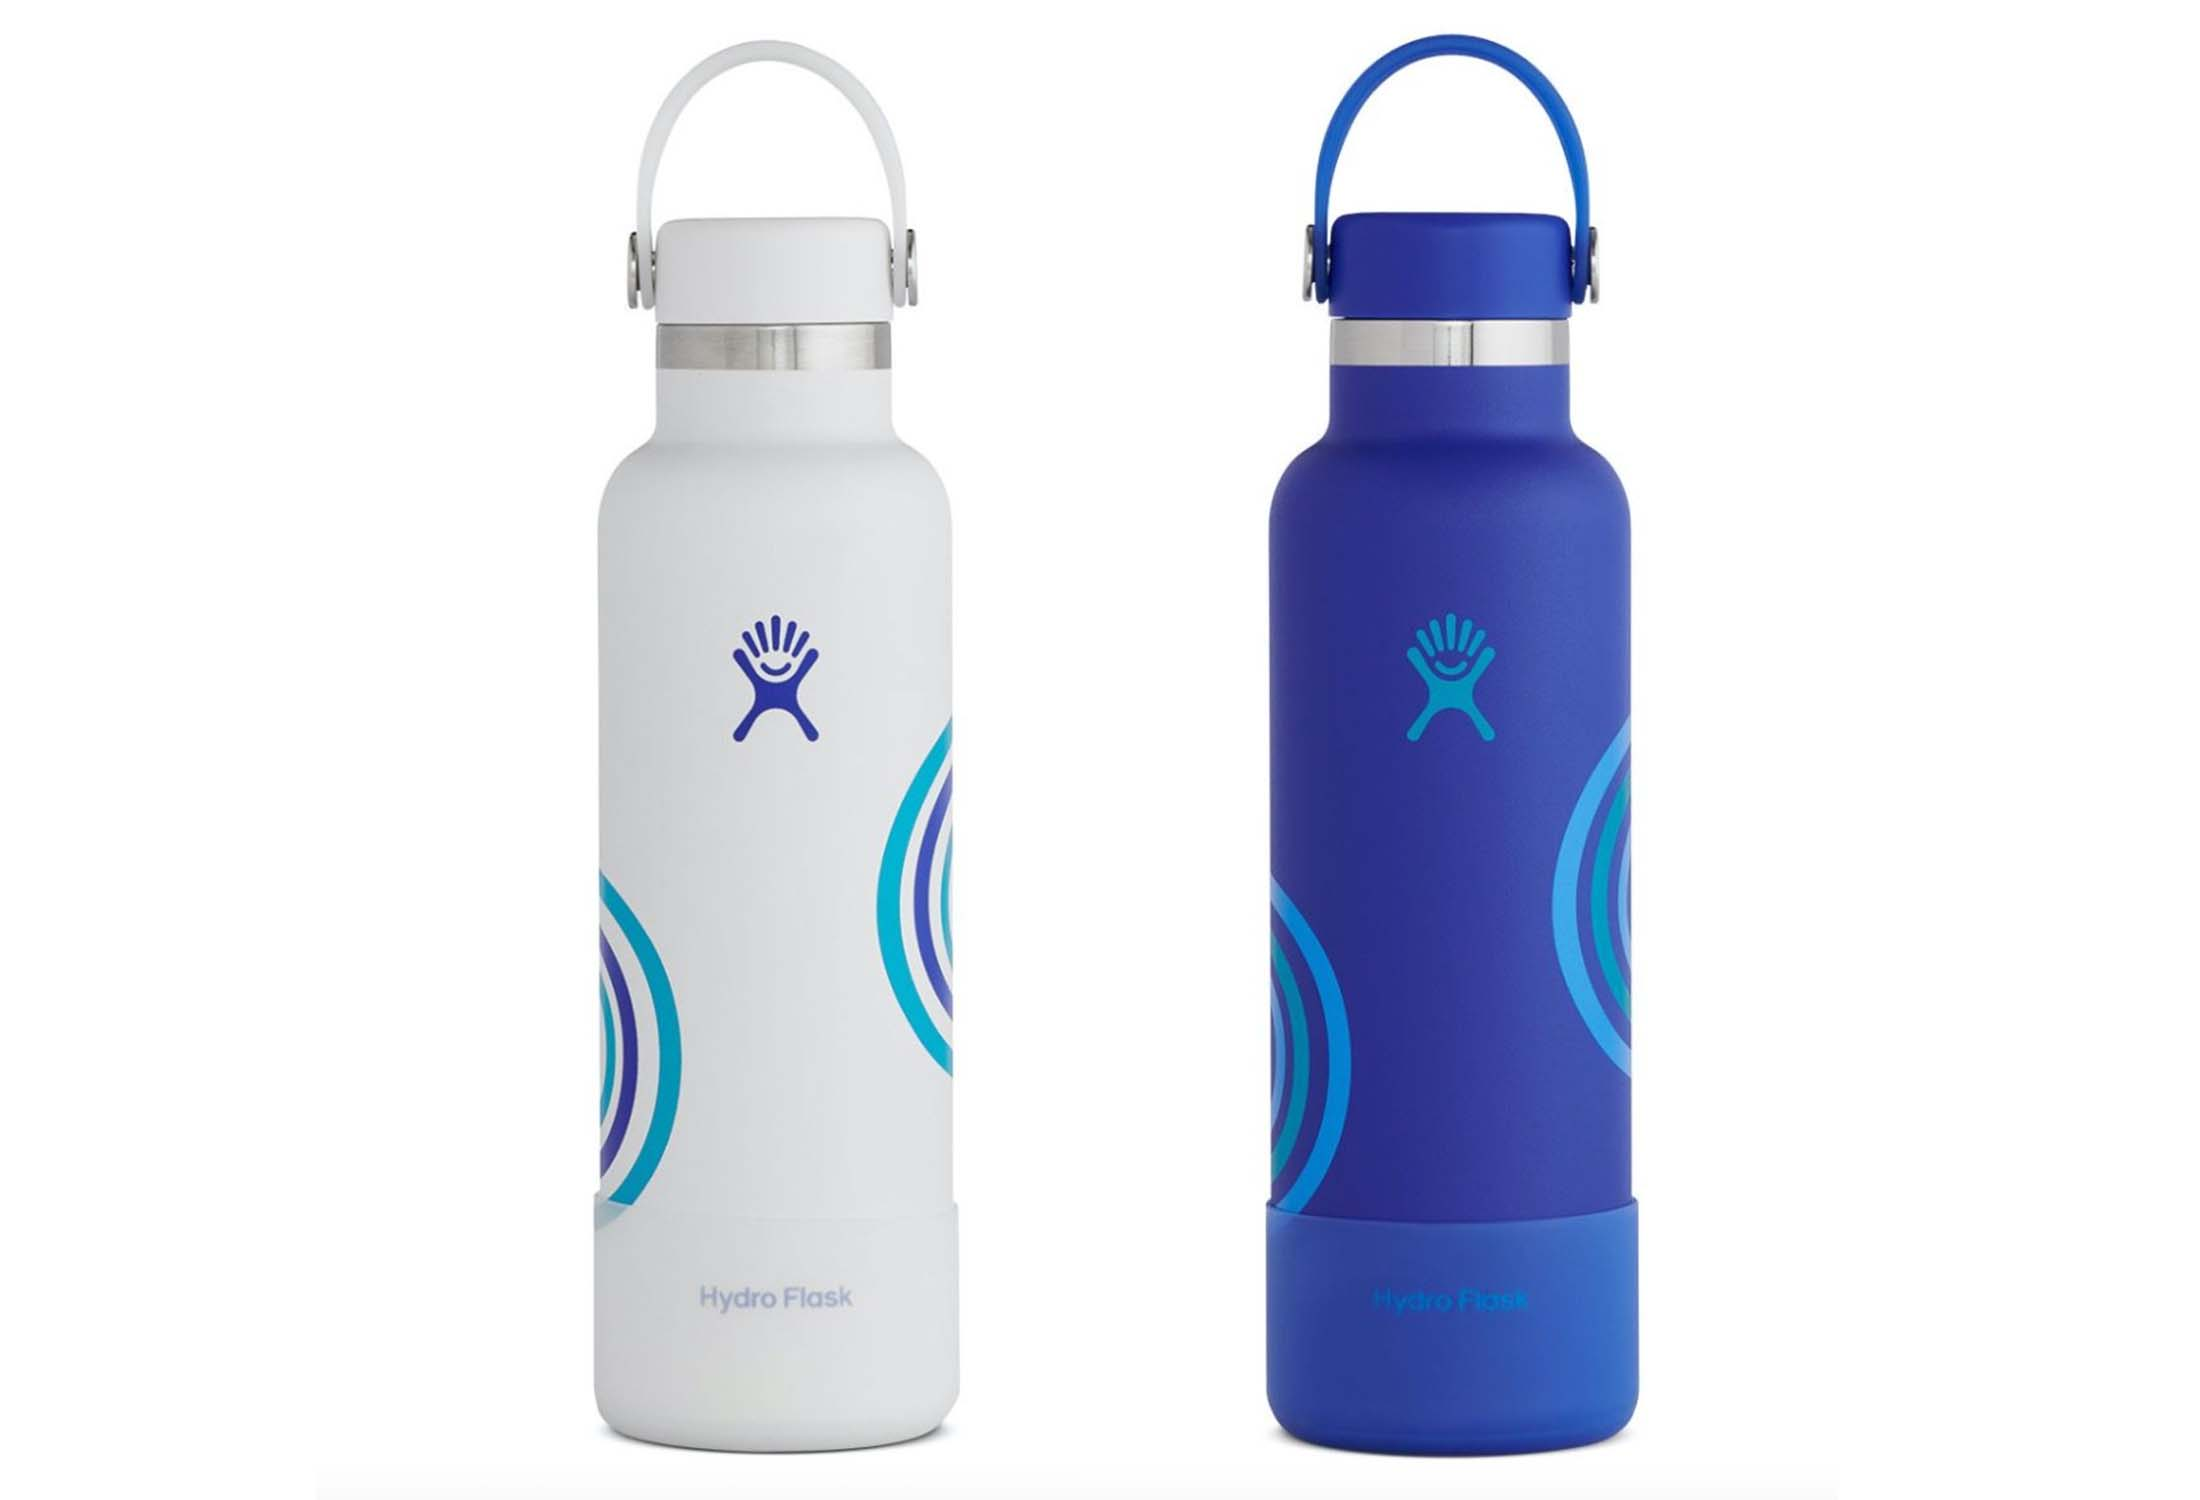 HF refill for good limited edition bottle